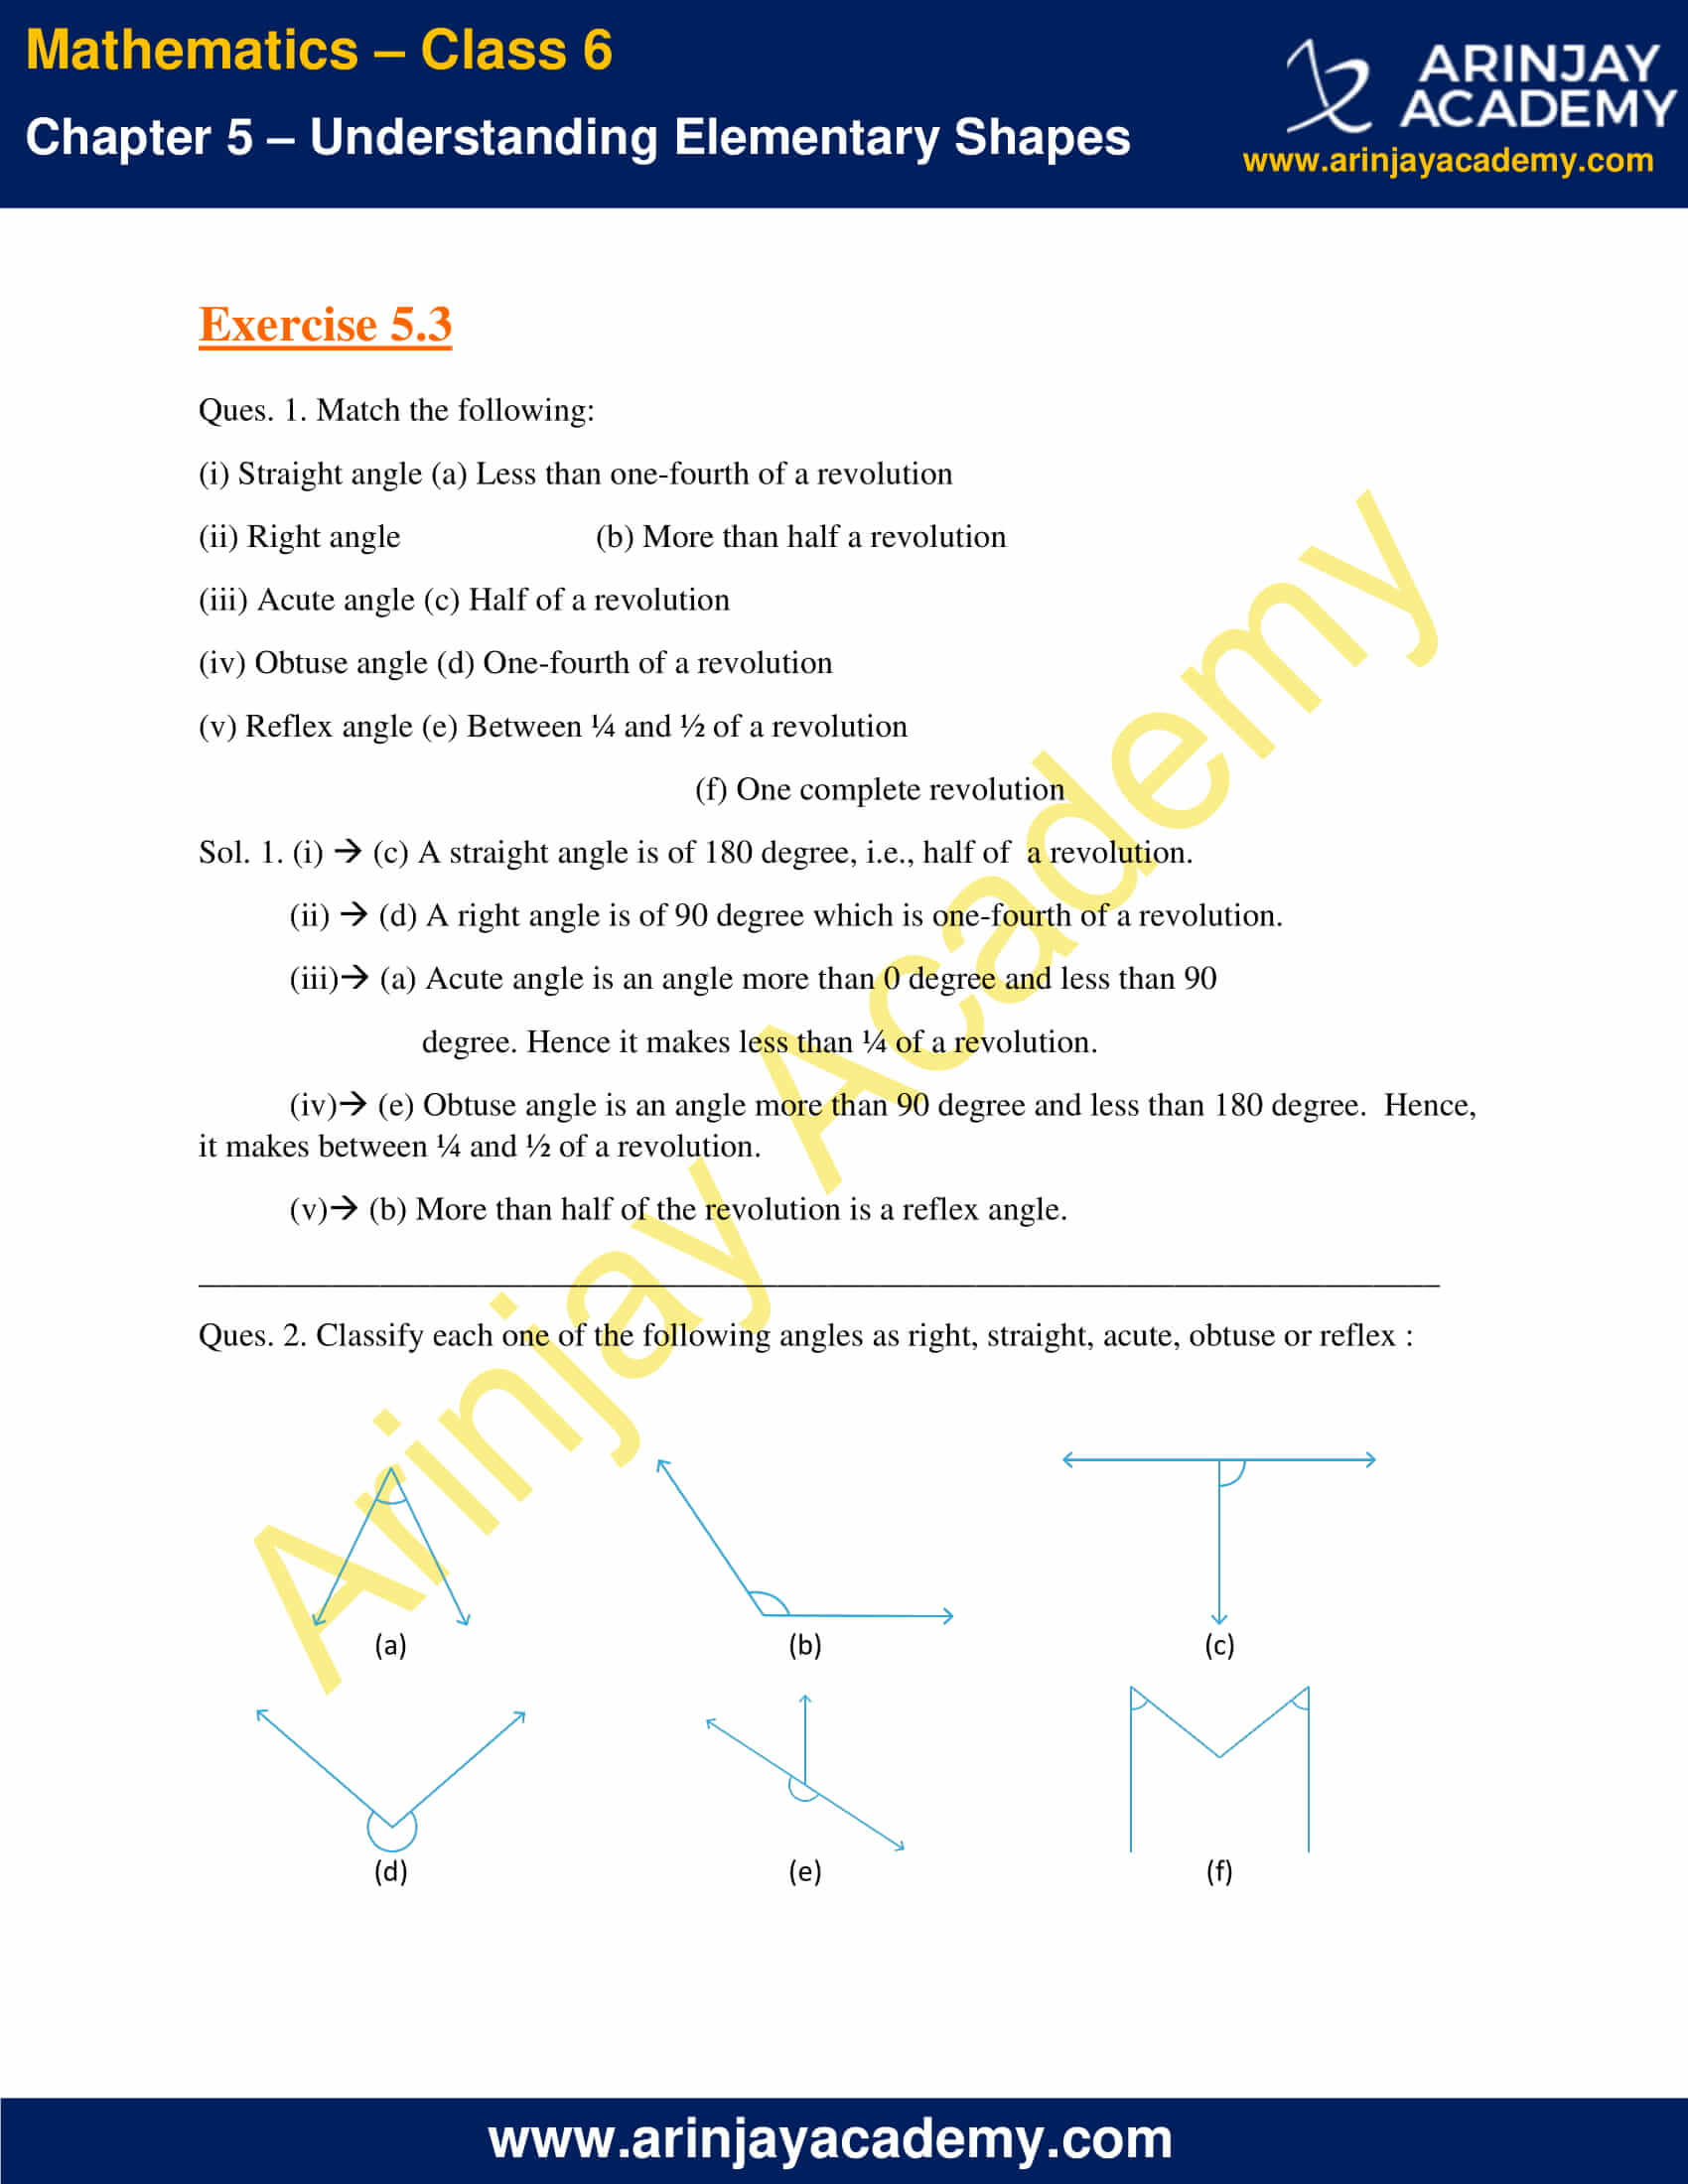 NCERT Solutions for Class 6 Maths Chapter 5 Exercise 5.3 image 1